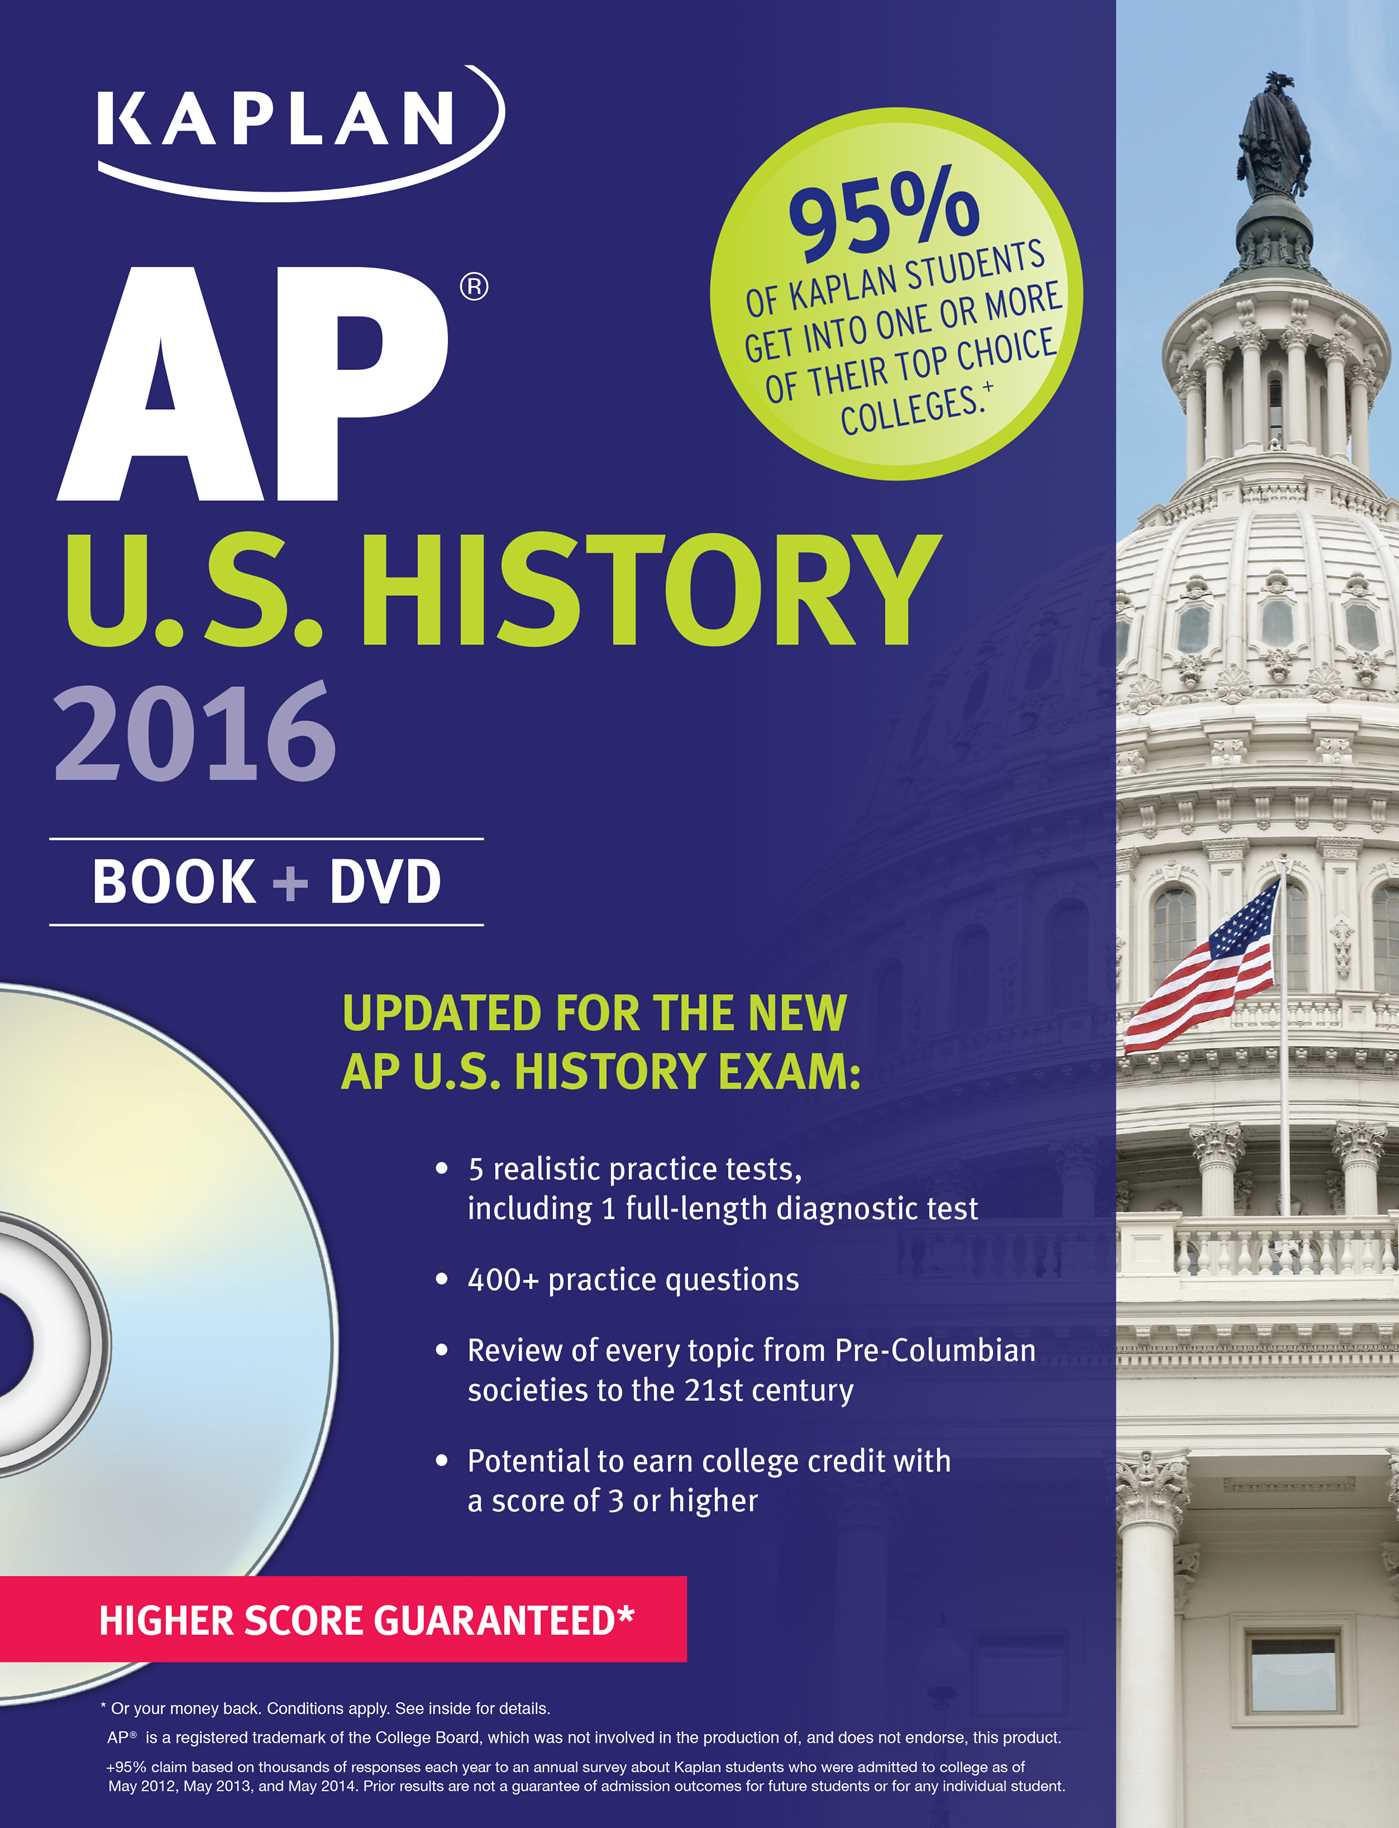 For anyone who knows anything about the APUSH Exam?